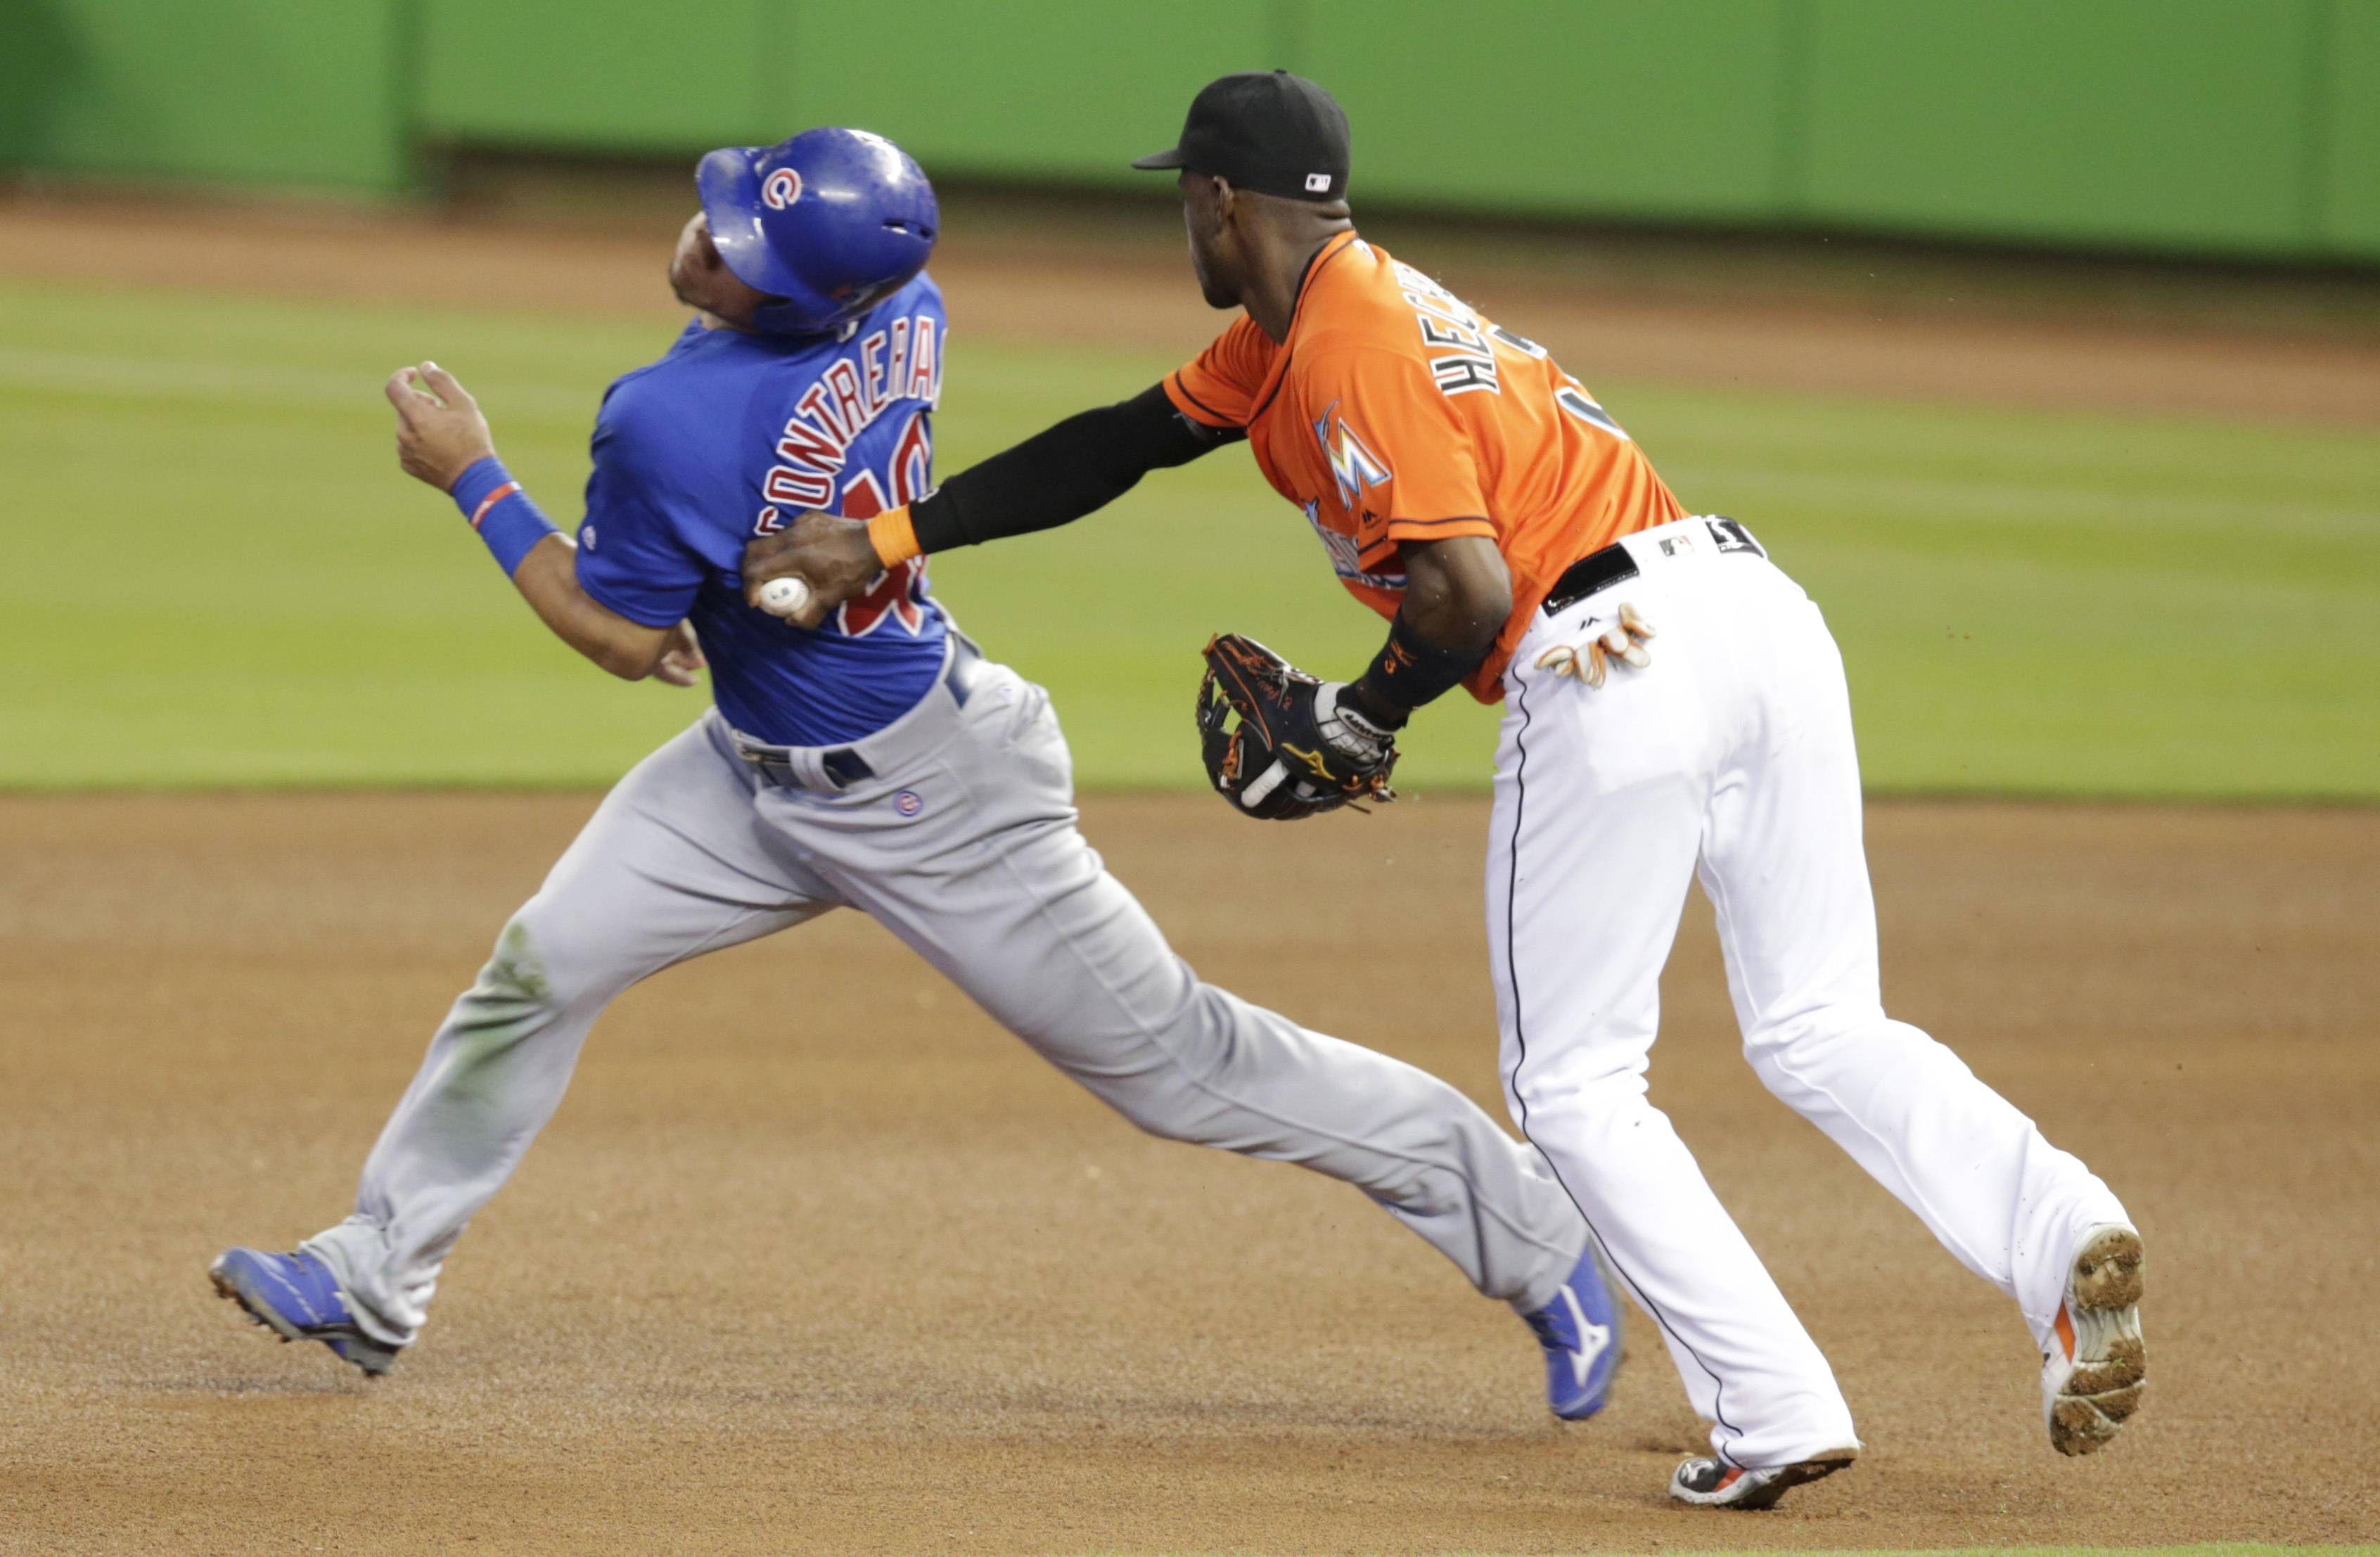 Chicago Cubs' Willson Contreras, left, is tagged out by Miami Marlins shortstop Adeiny Hechavarria on an attempt to steal second during the fourth inning of a baseball game, Sunday, June 26, 2016, in Miami.